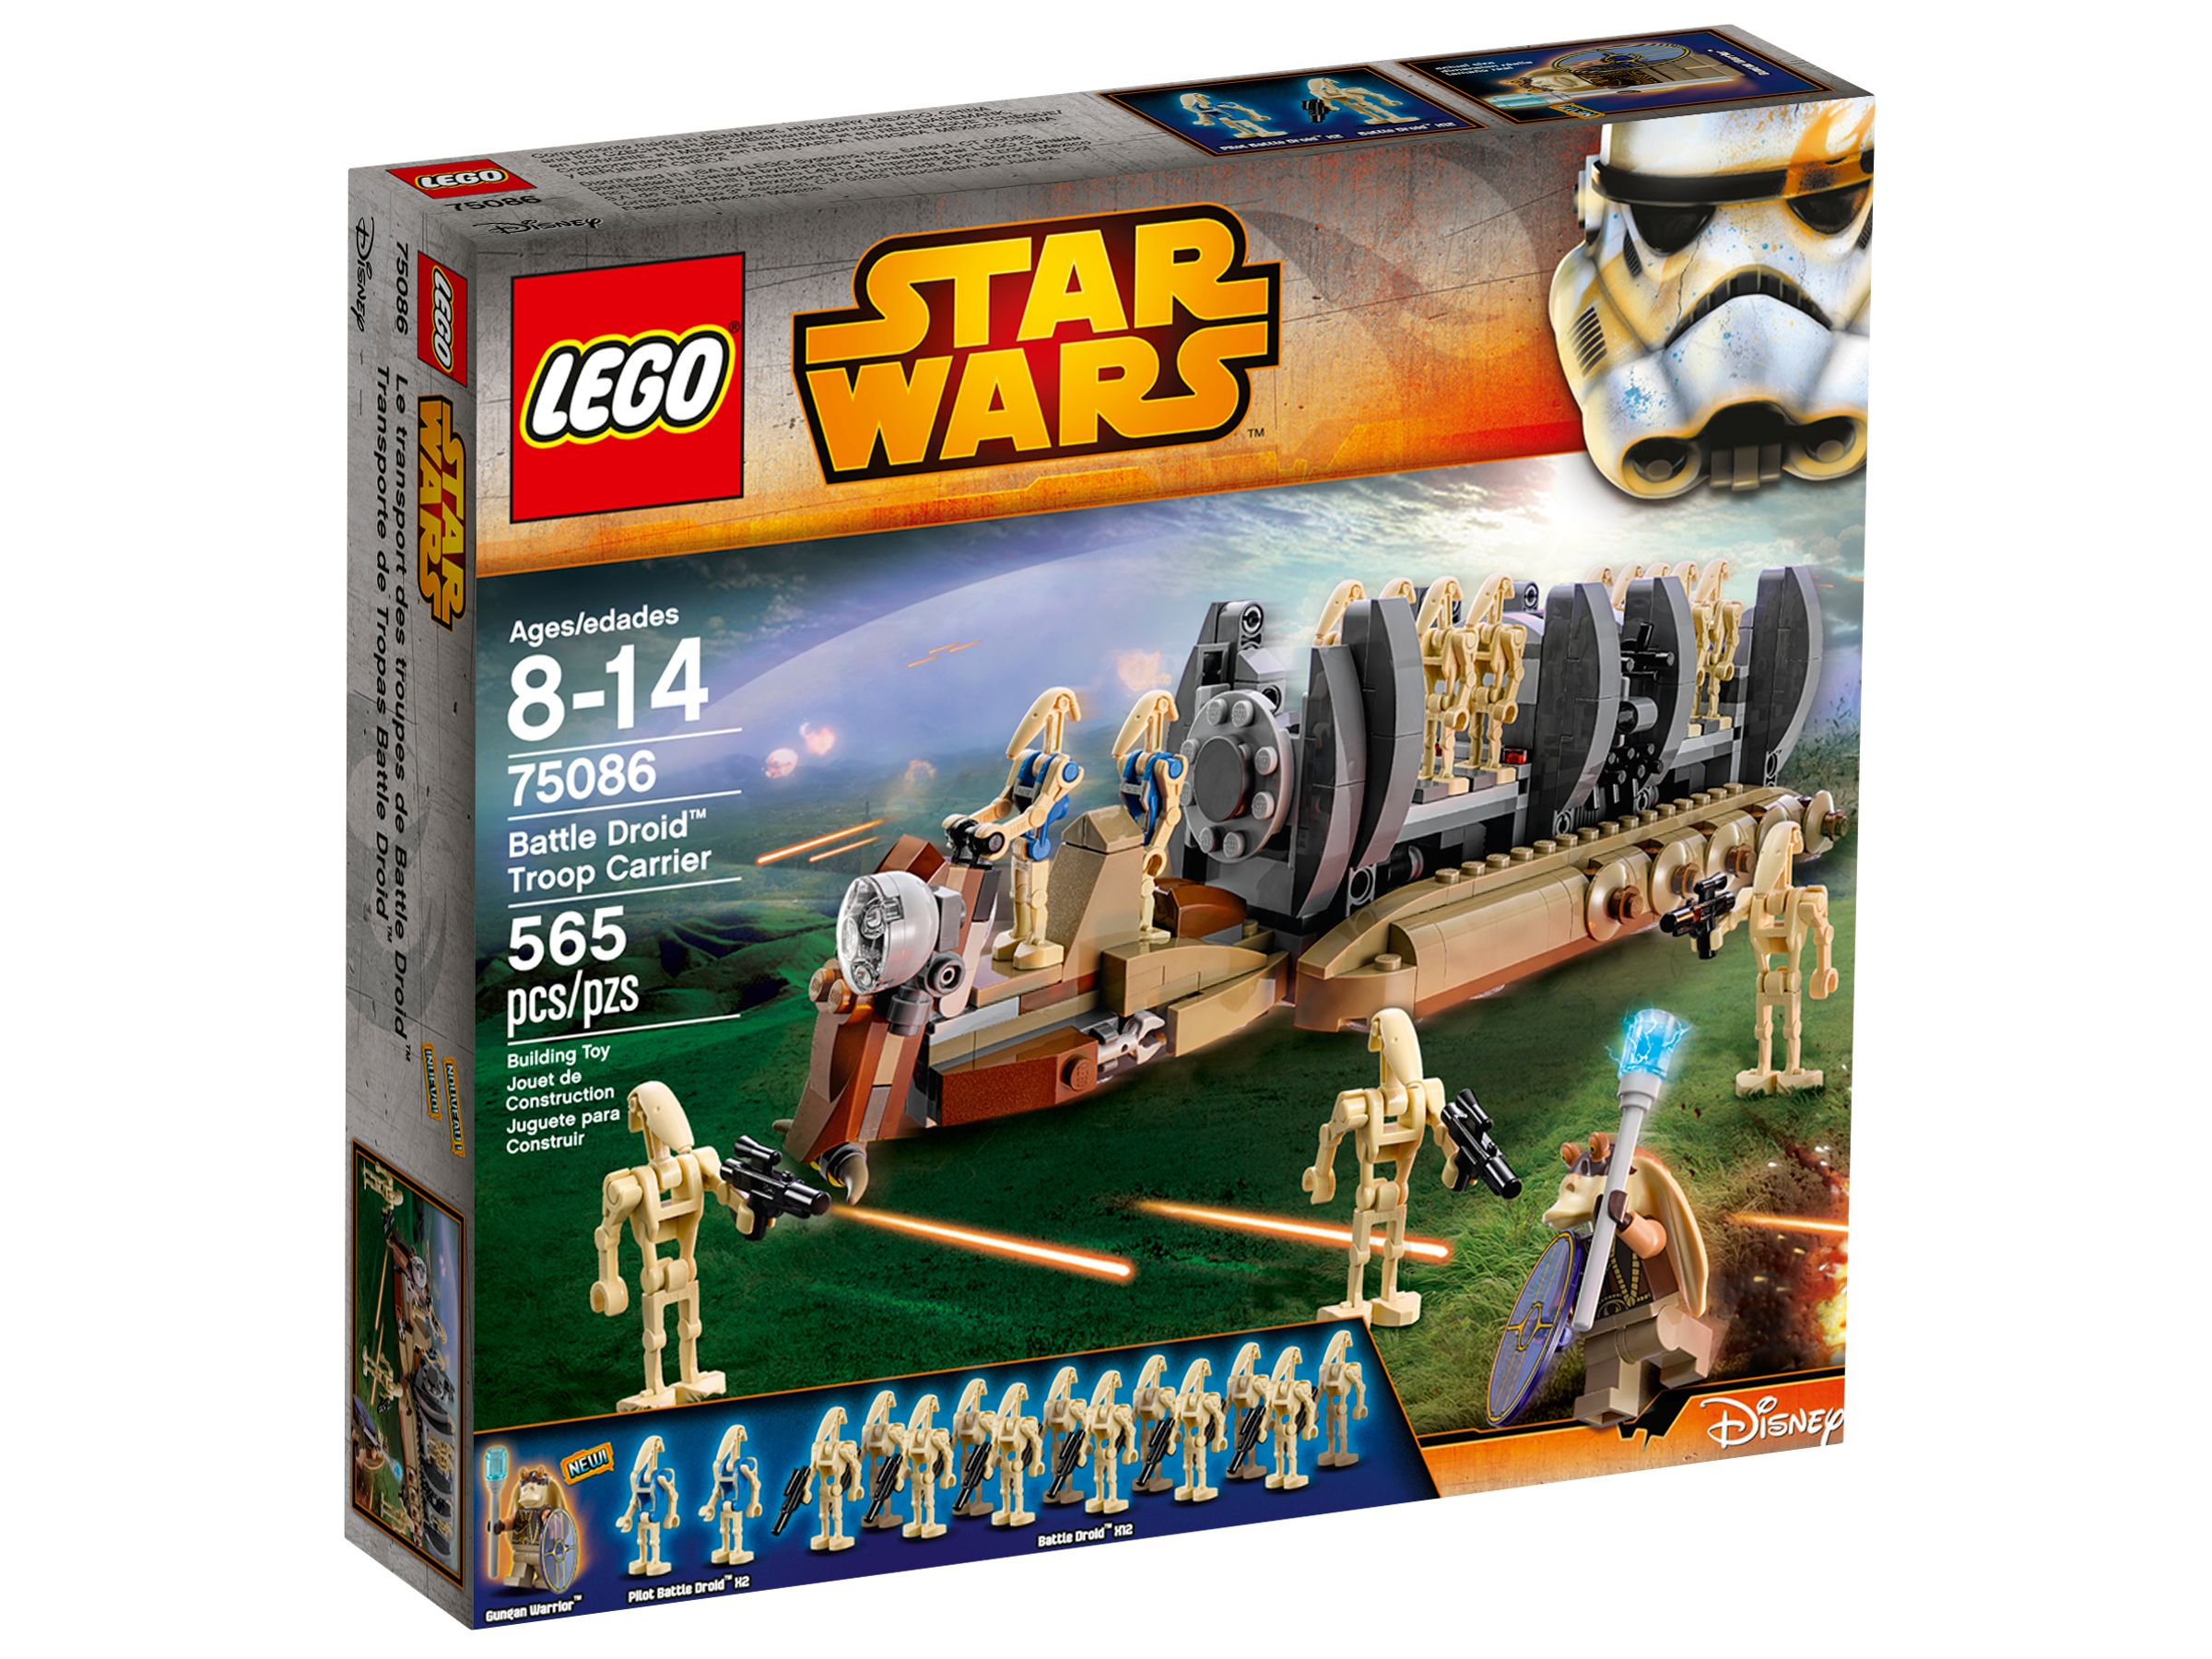 LEGO Star Wars 75086 Battle Droid™ Troop Carrier LEGO_75086_alt1.jpg